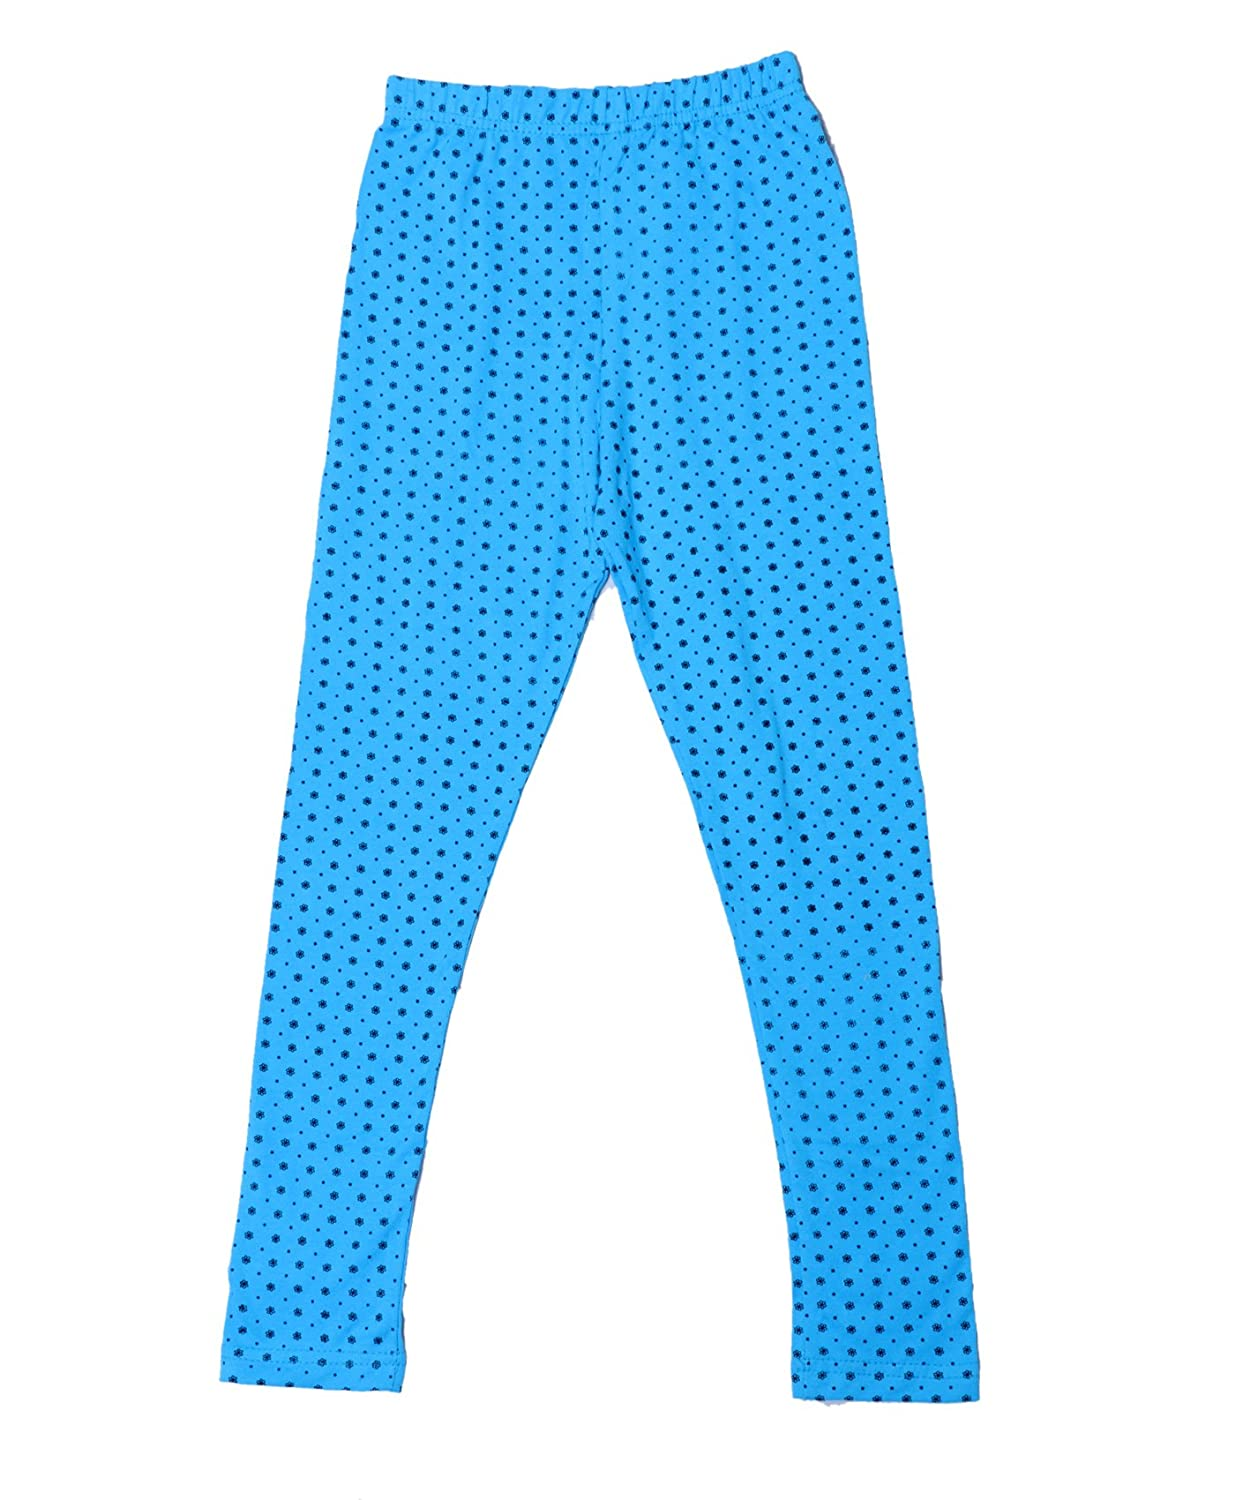 Indistar Girls Super Soft and Stylish Sky Blue Cotton Printed Legging Pants